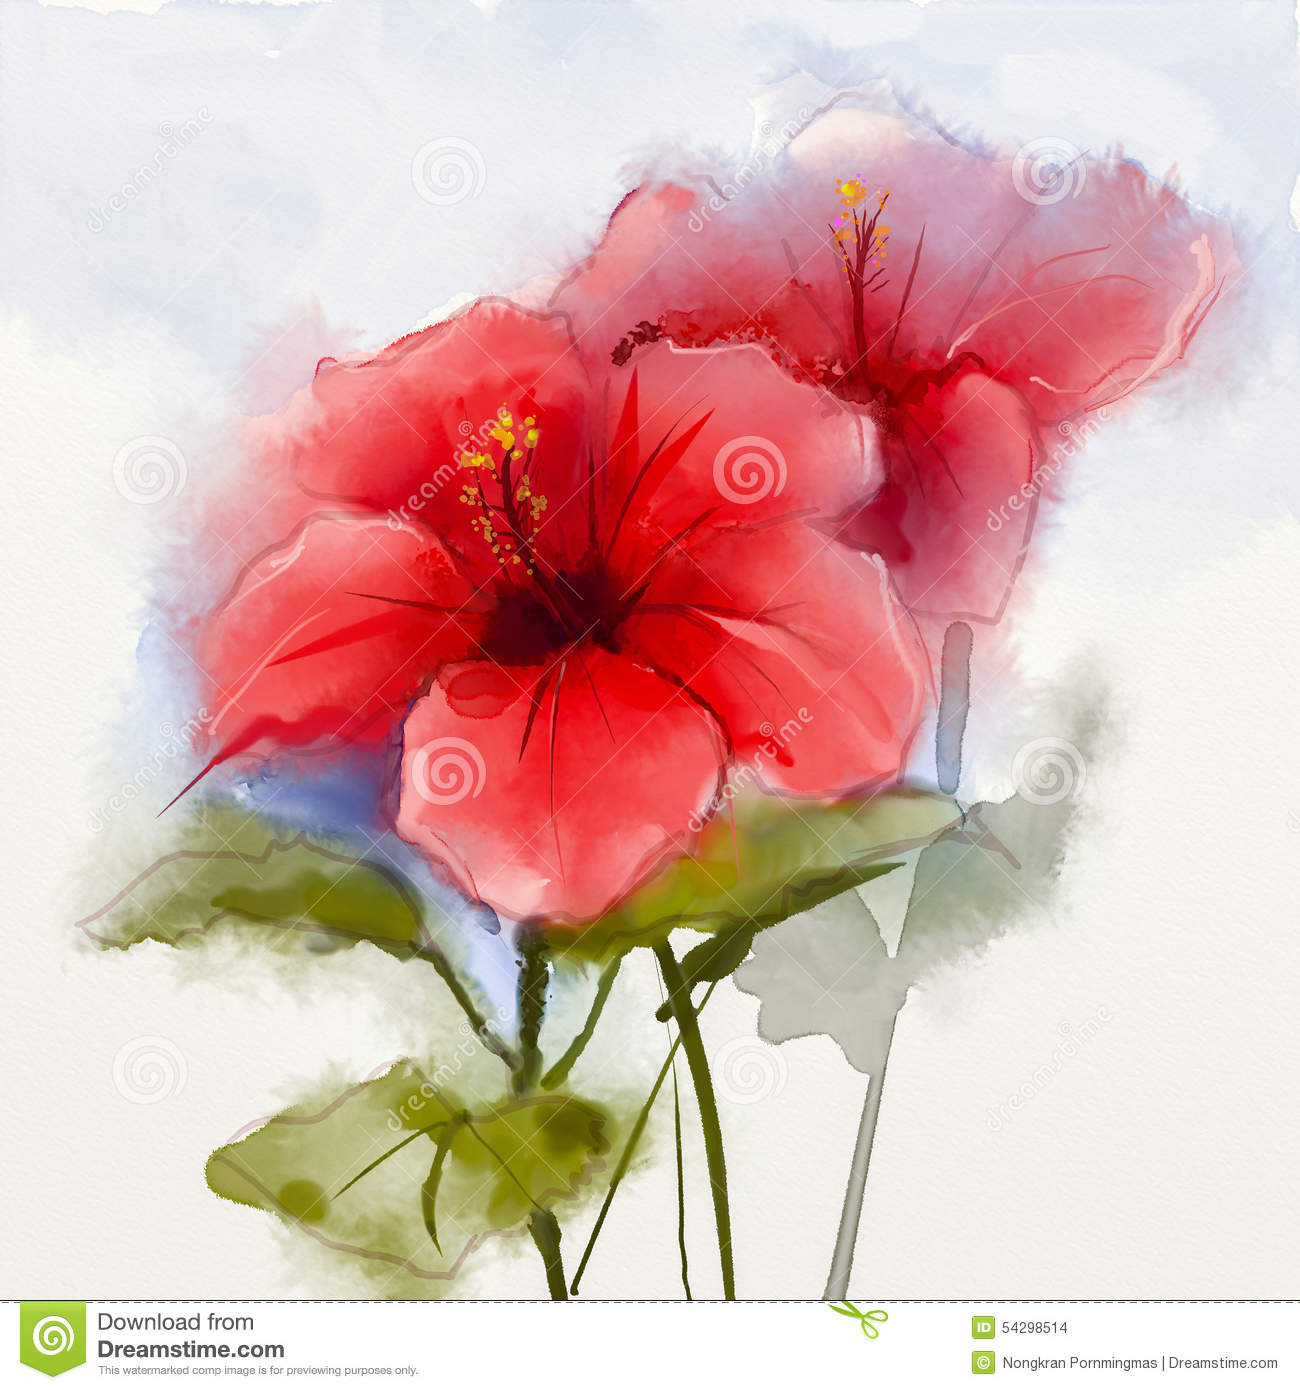 Watercolor Painting Red Hibiscus Flower Stock Illustration ...